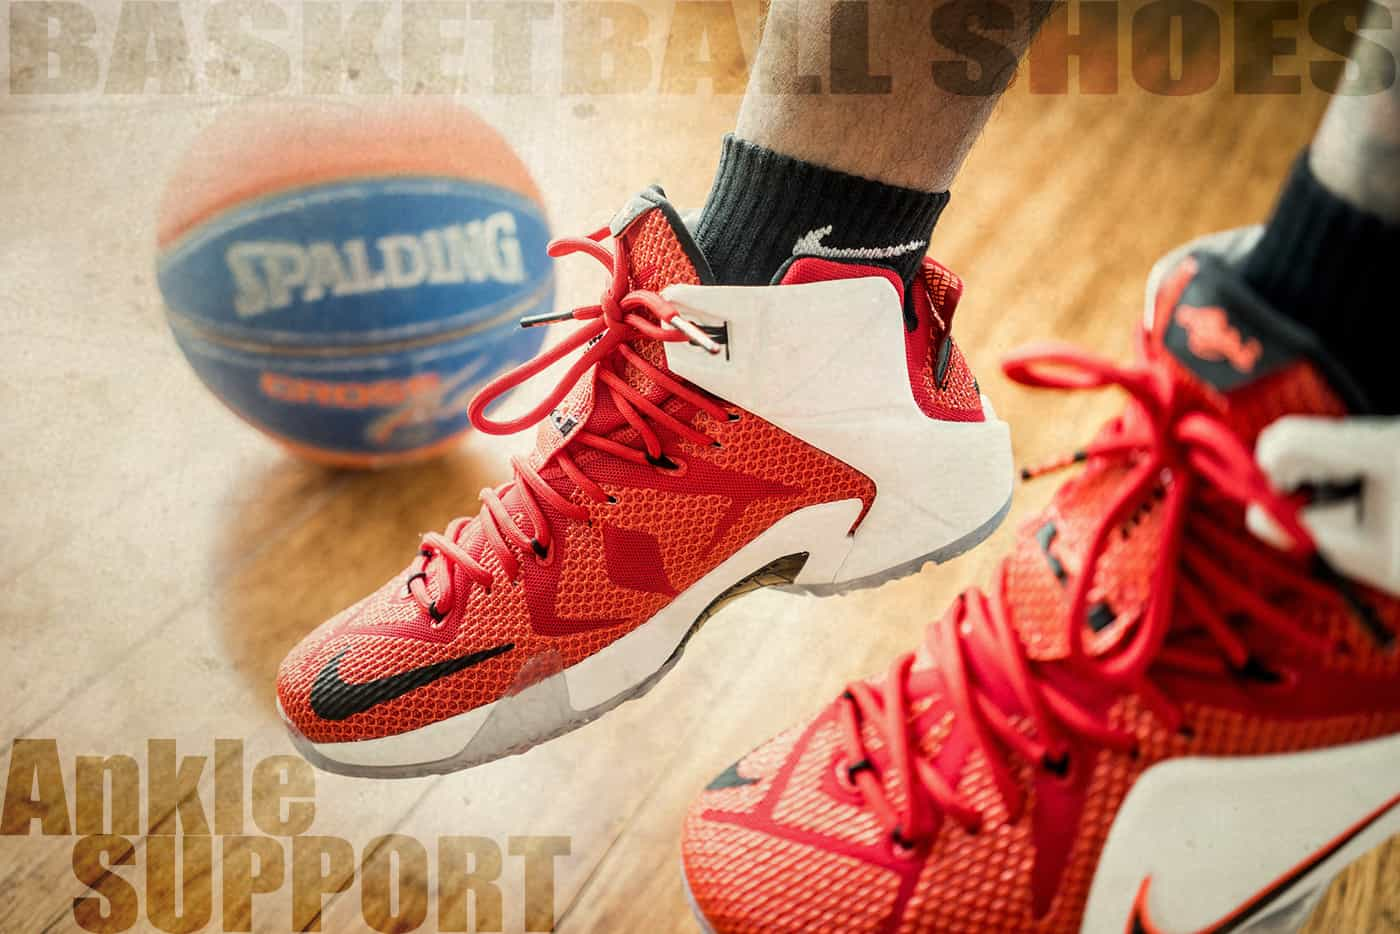 e9a835368c09 The 11 Best Basketball Shoes for Ankle Support 2019